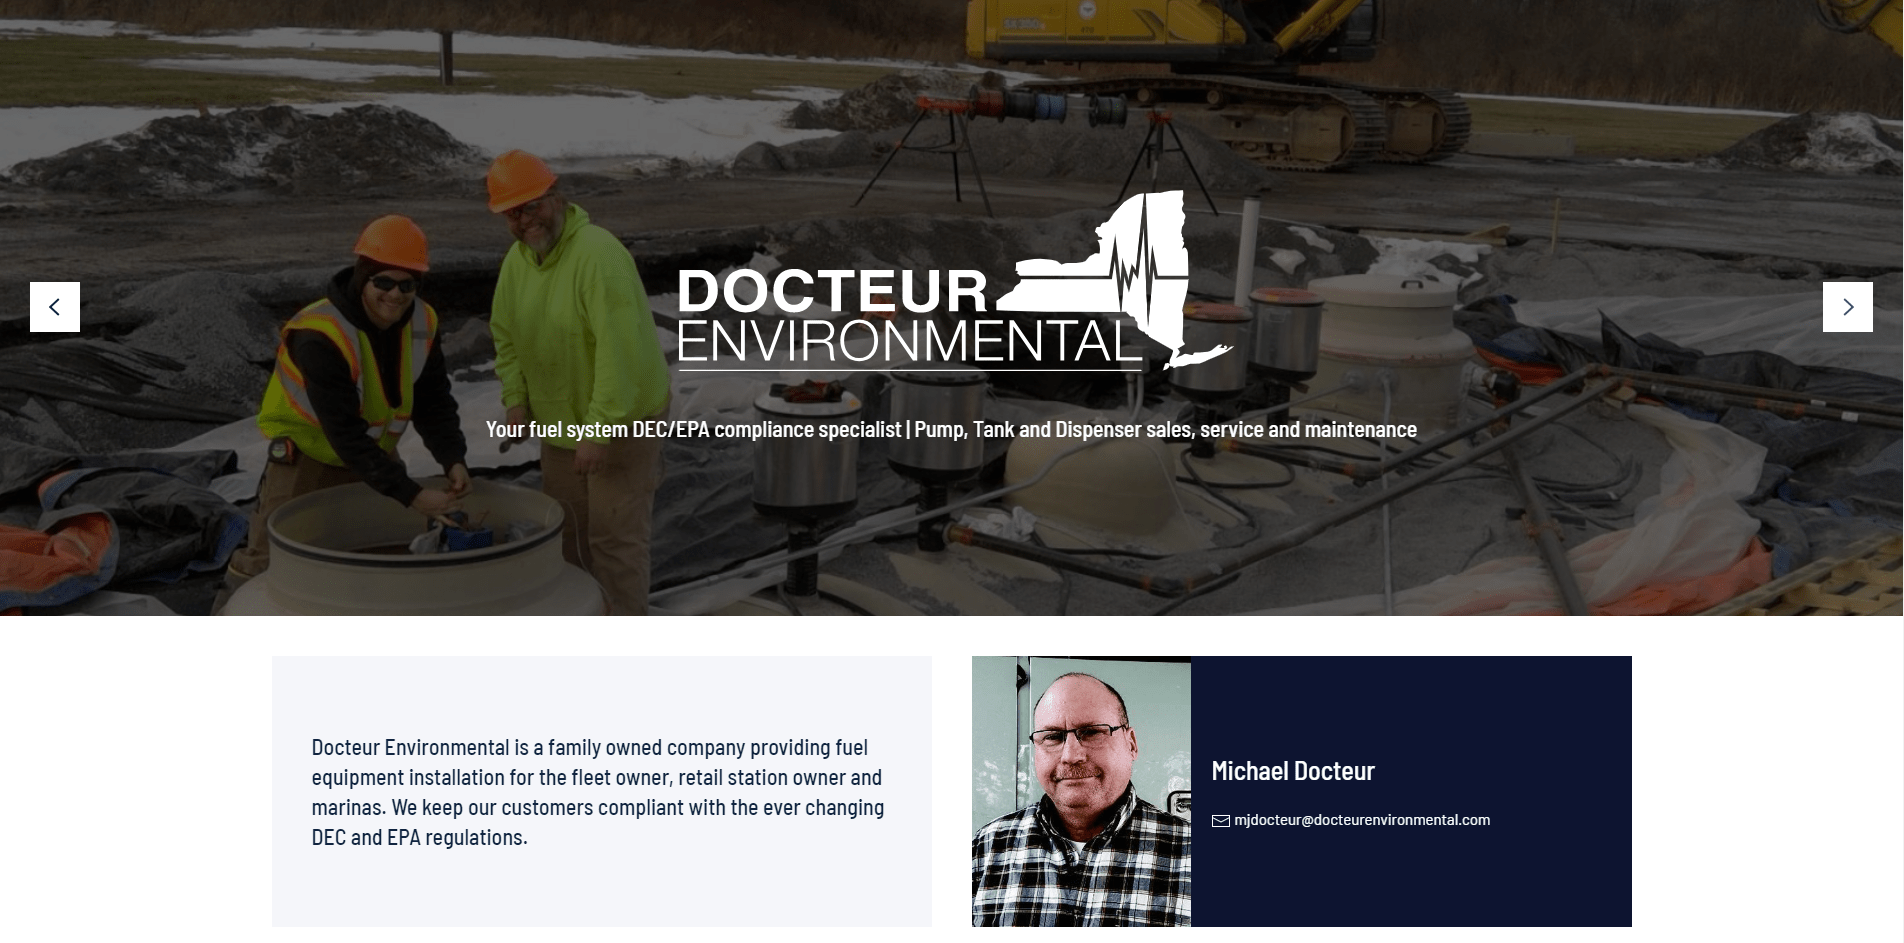 Docteur Environmental